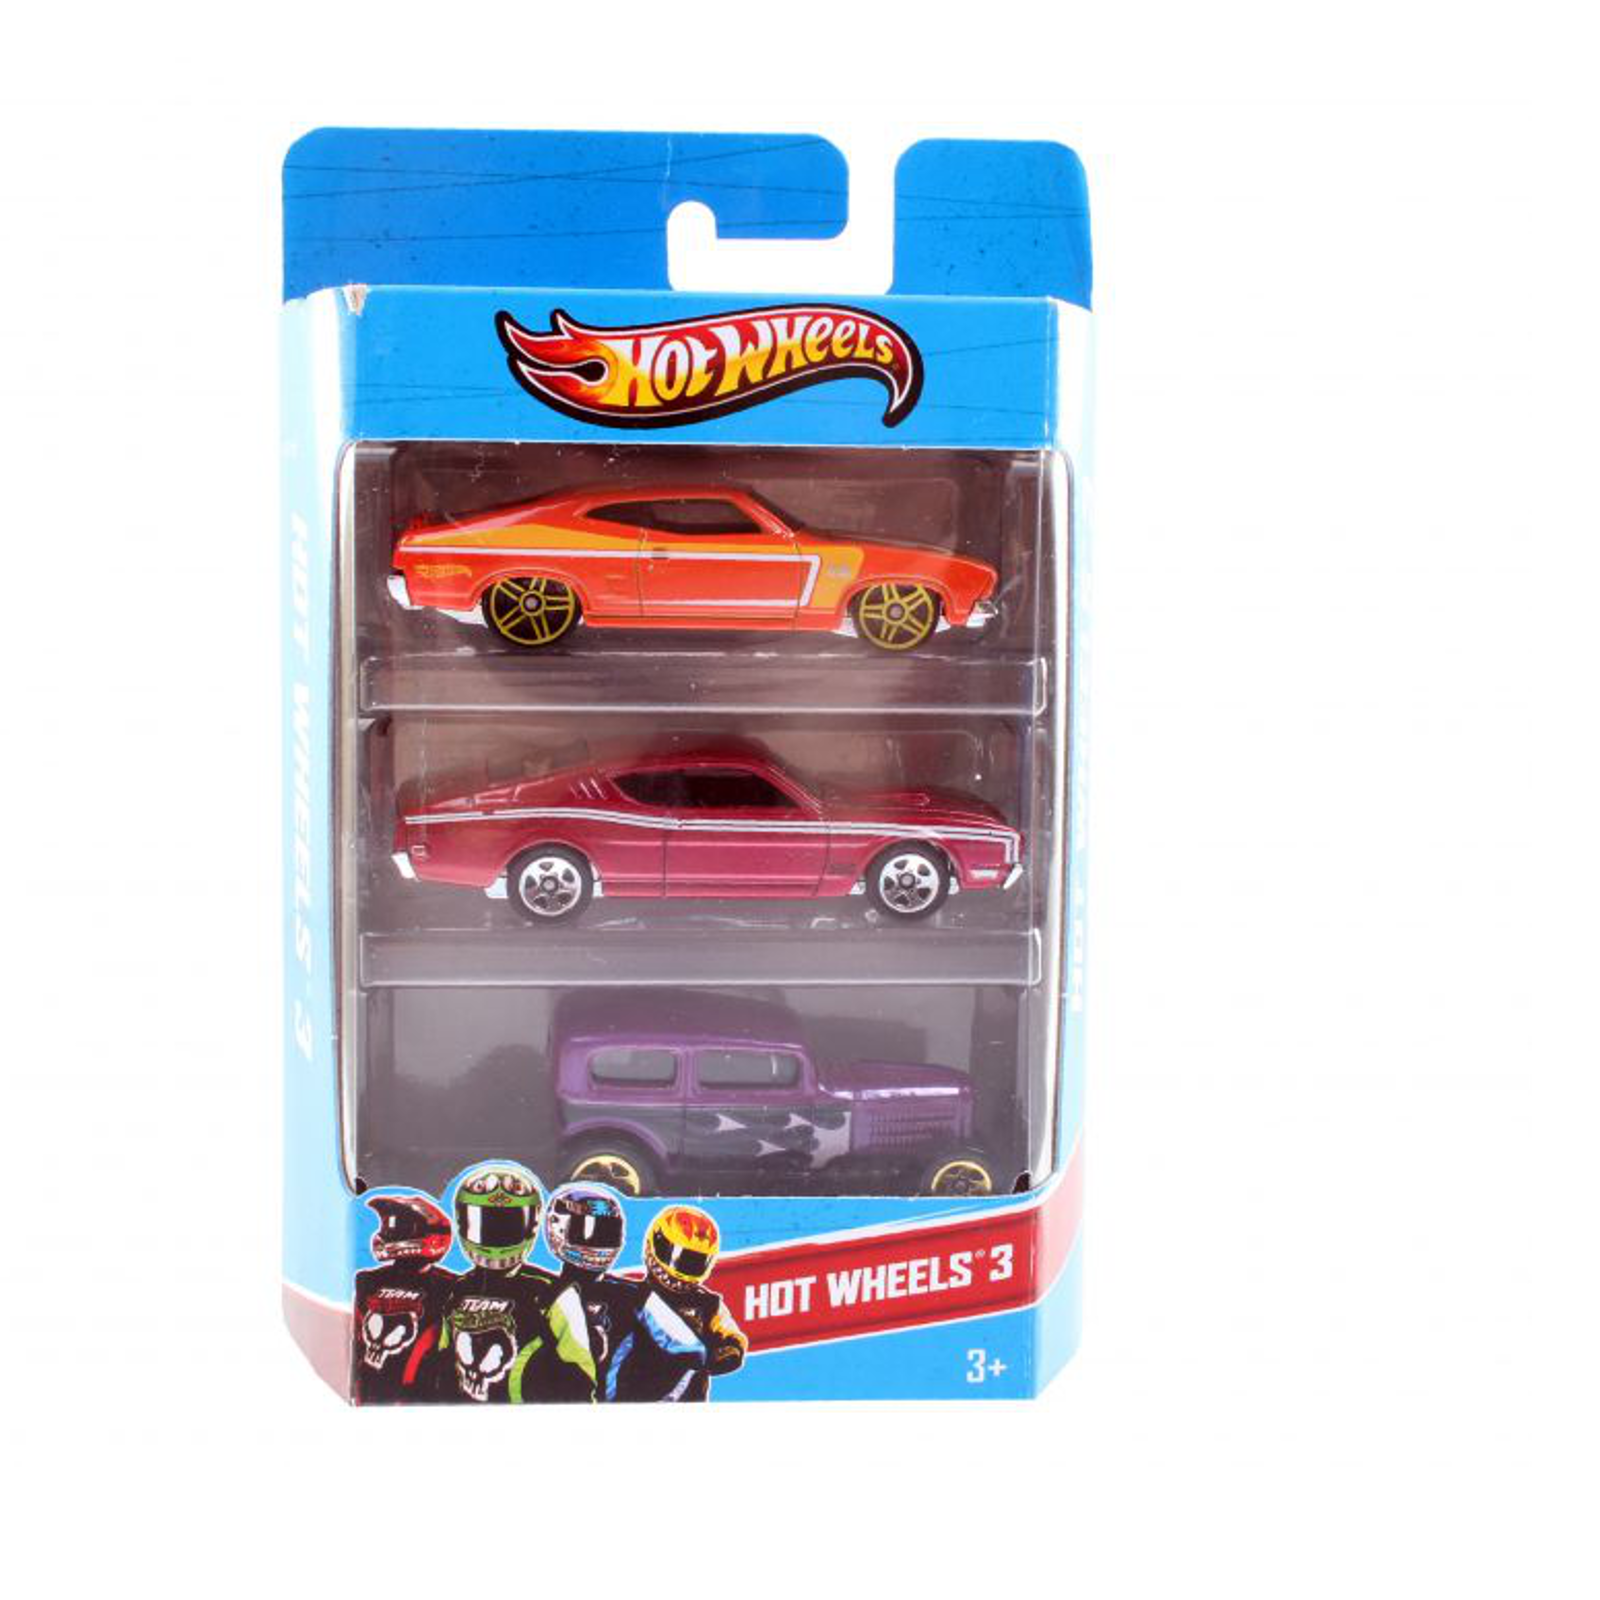 ����� ������� Hot Wheels ������� ������� ����� �����, ������ �������, ������ ���������